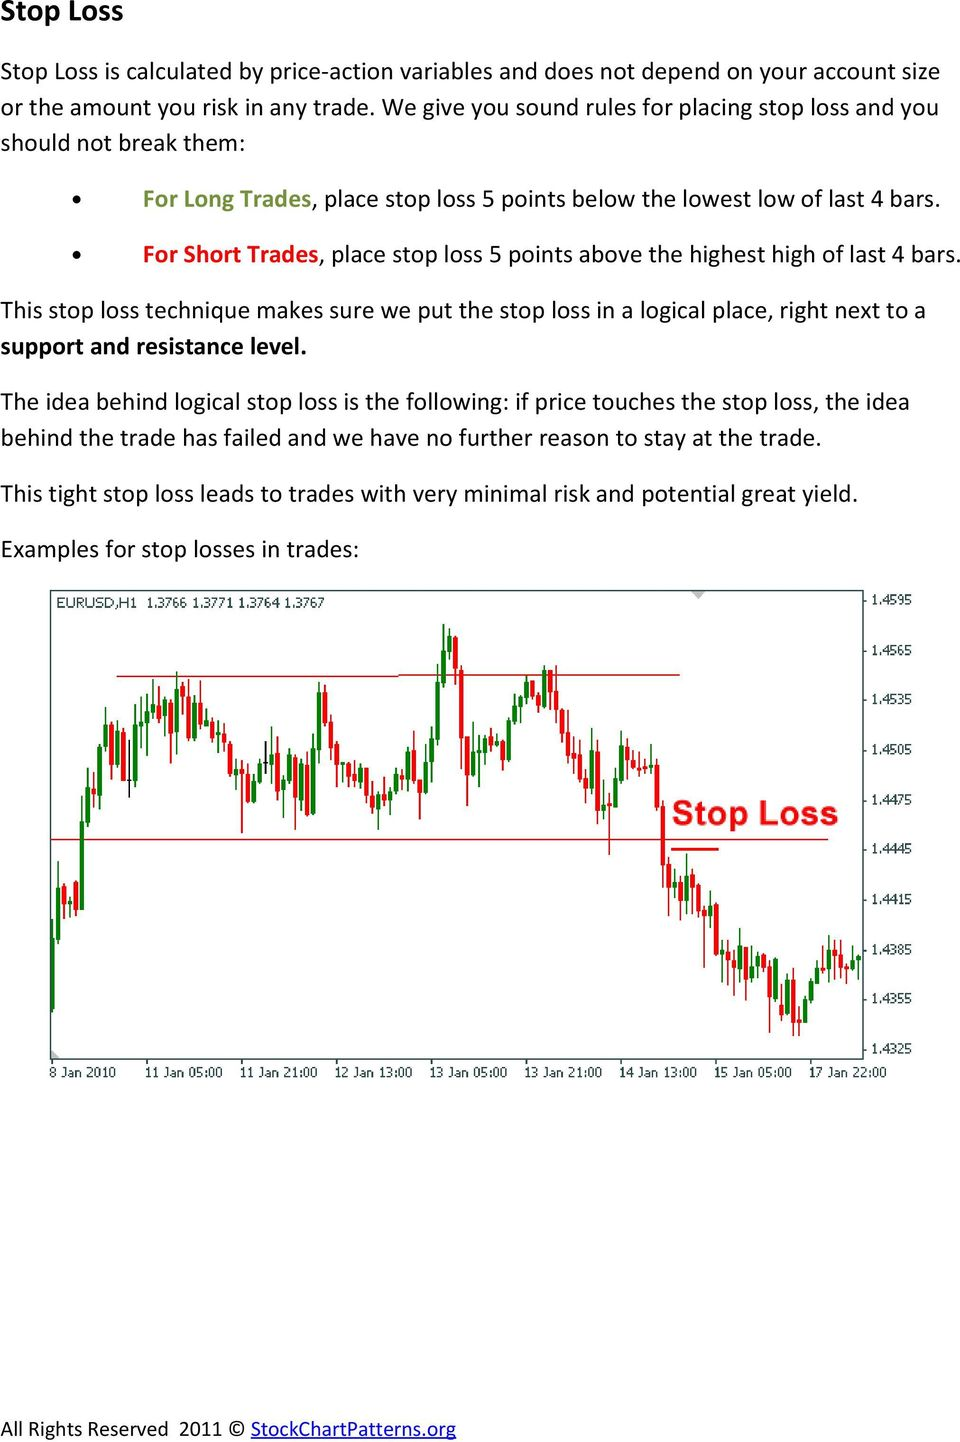 For Short Trades, place stop loss 5 points above the highest high of last 4 bars.